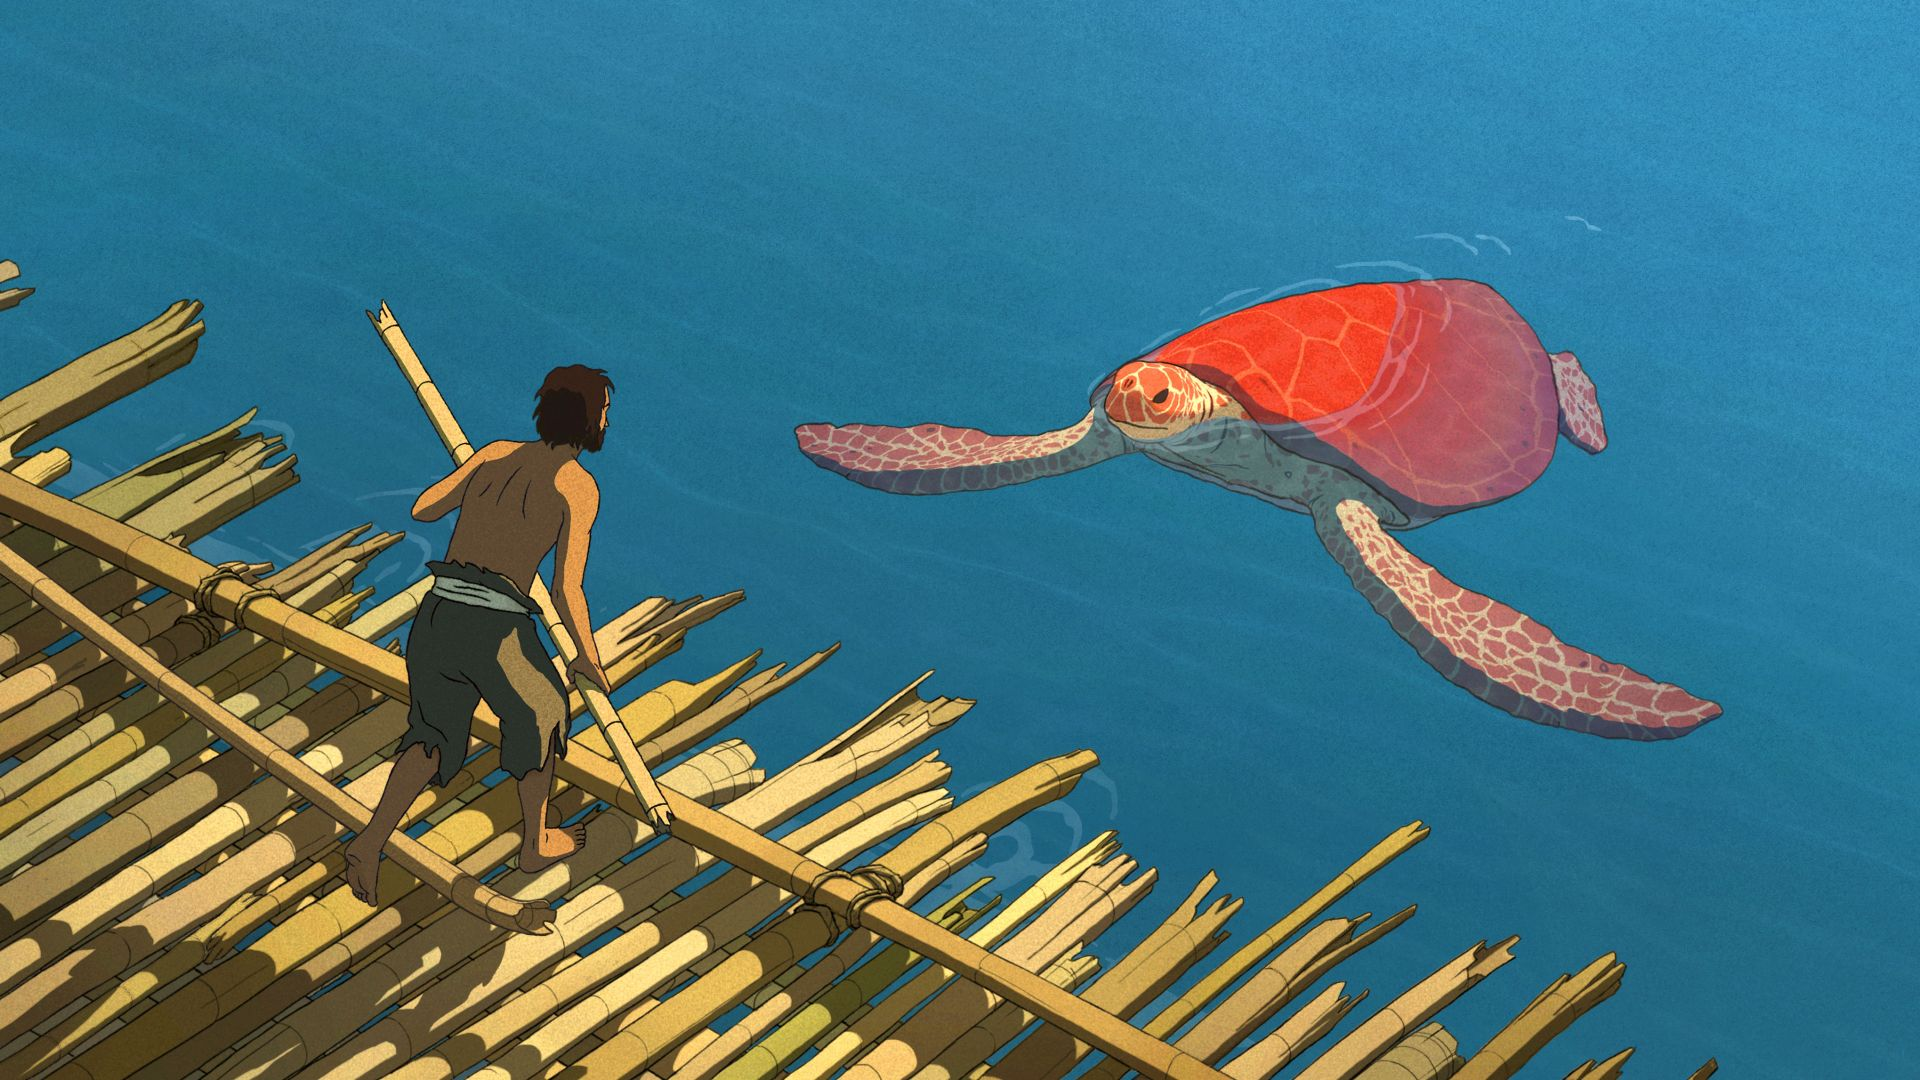 The Red Turtle, La tortue rouge, best animation movies